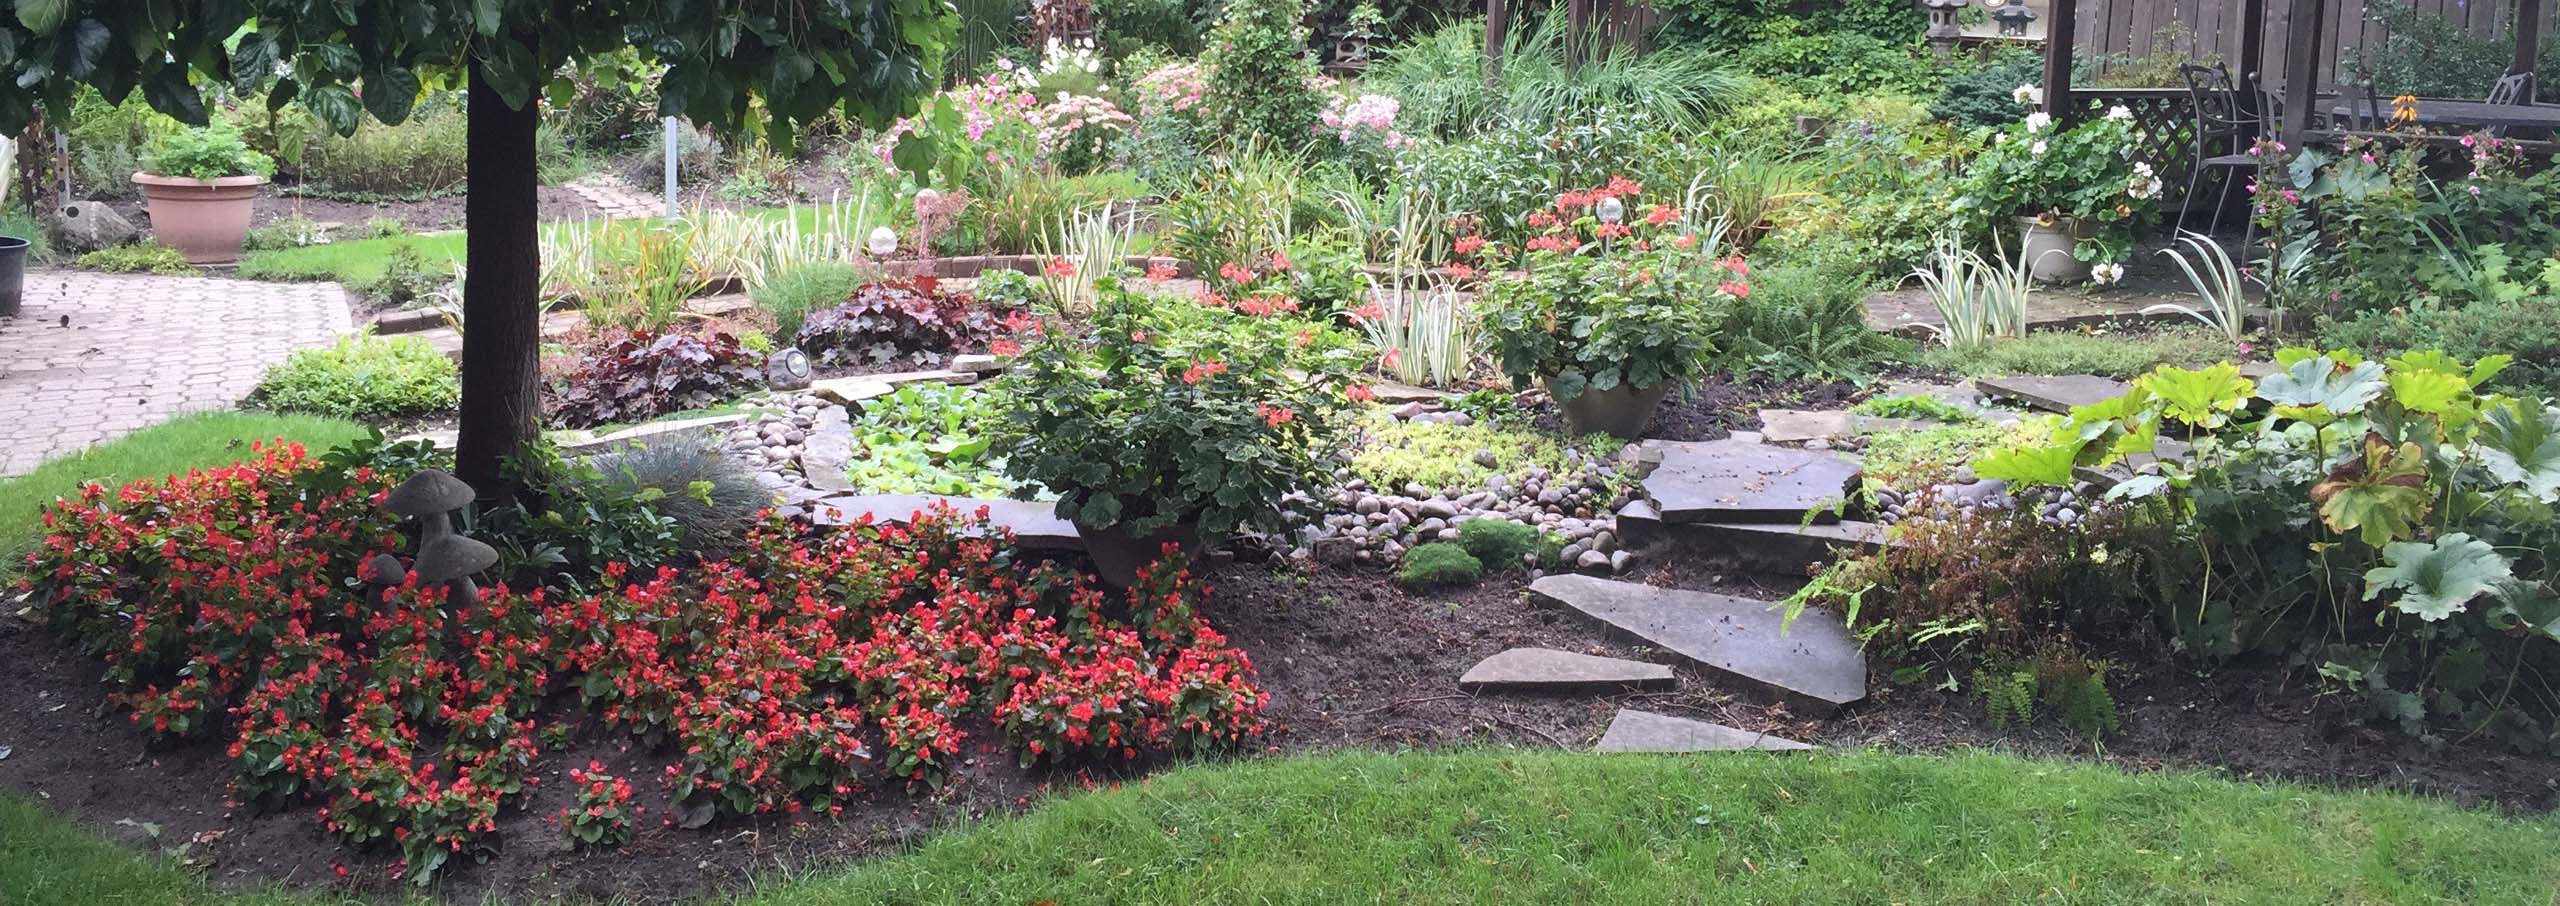 Rain Gardens, Sustainable, Organic